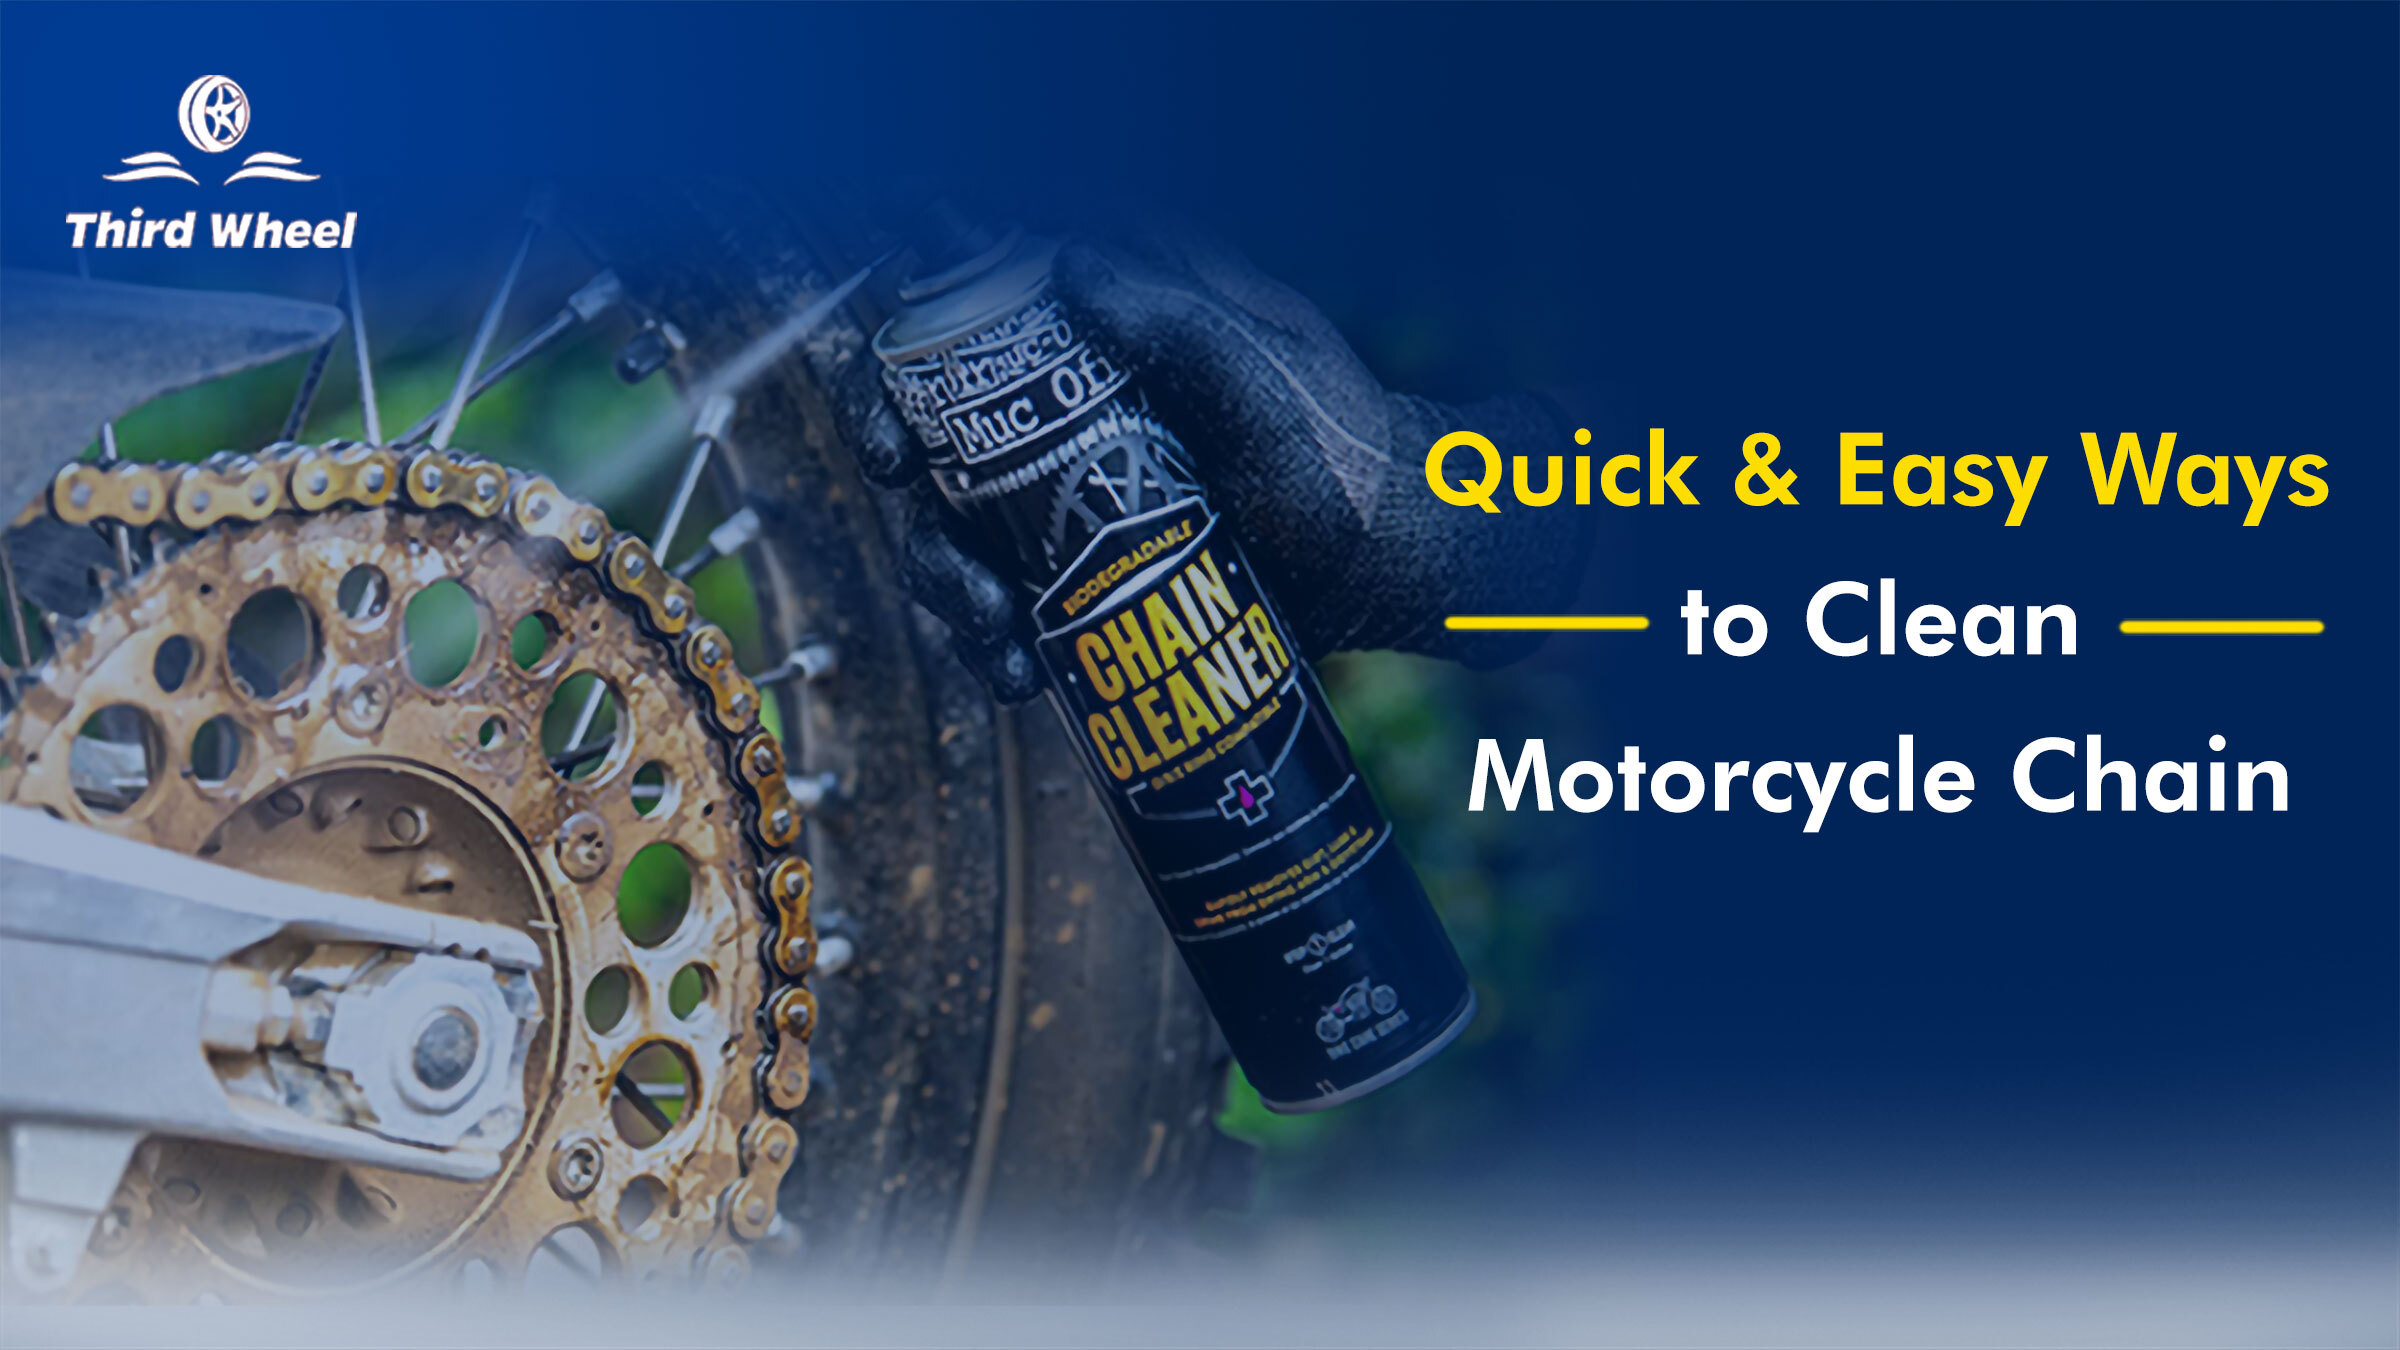 Simple & Quick steps to Clean your Motorcycle Chain at Home